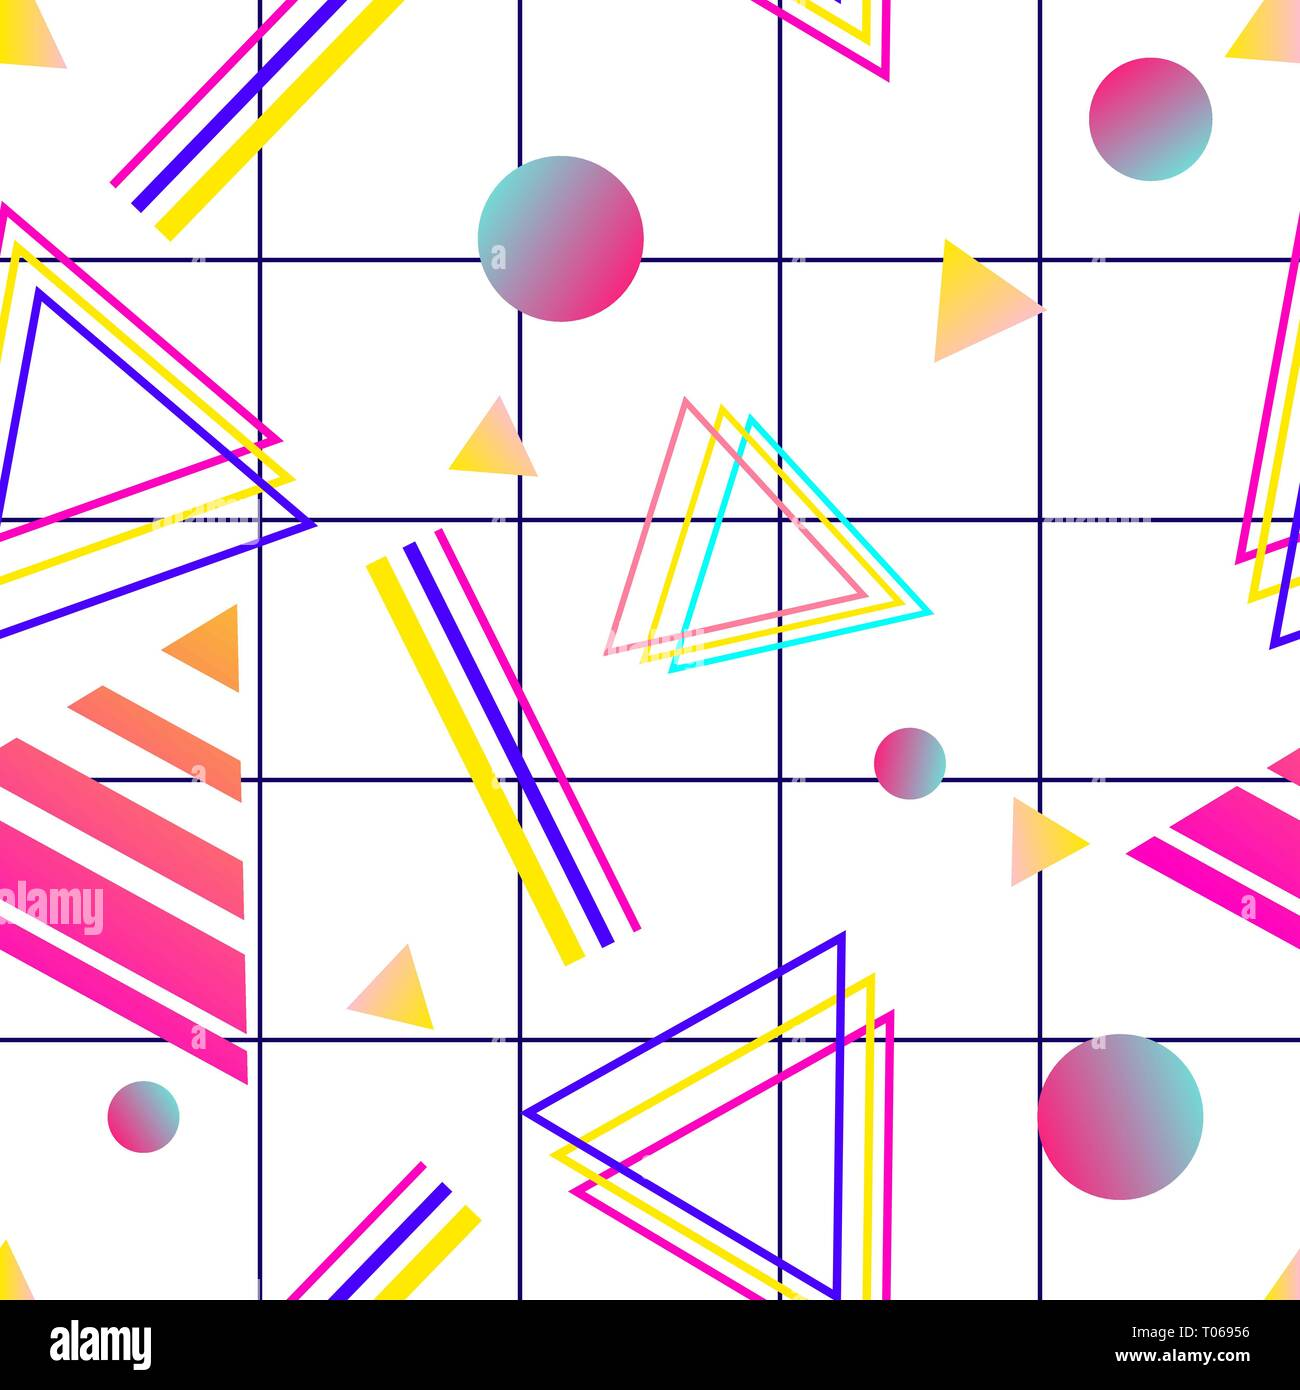 Vaporwave seamless 80's style pattern with geometric shapes